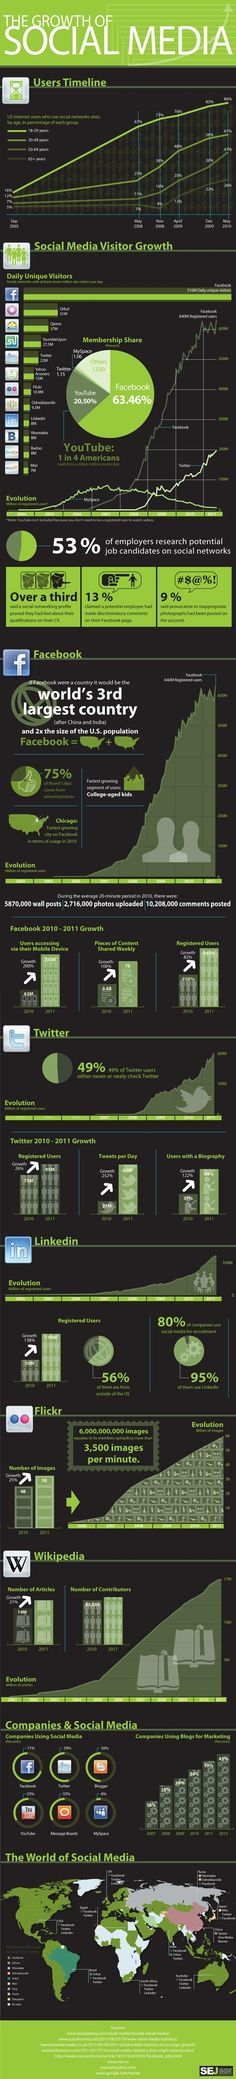 The Growth of Social Media. #infographic #socialmedia